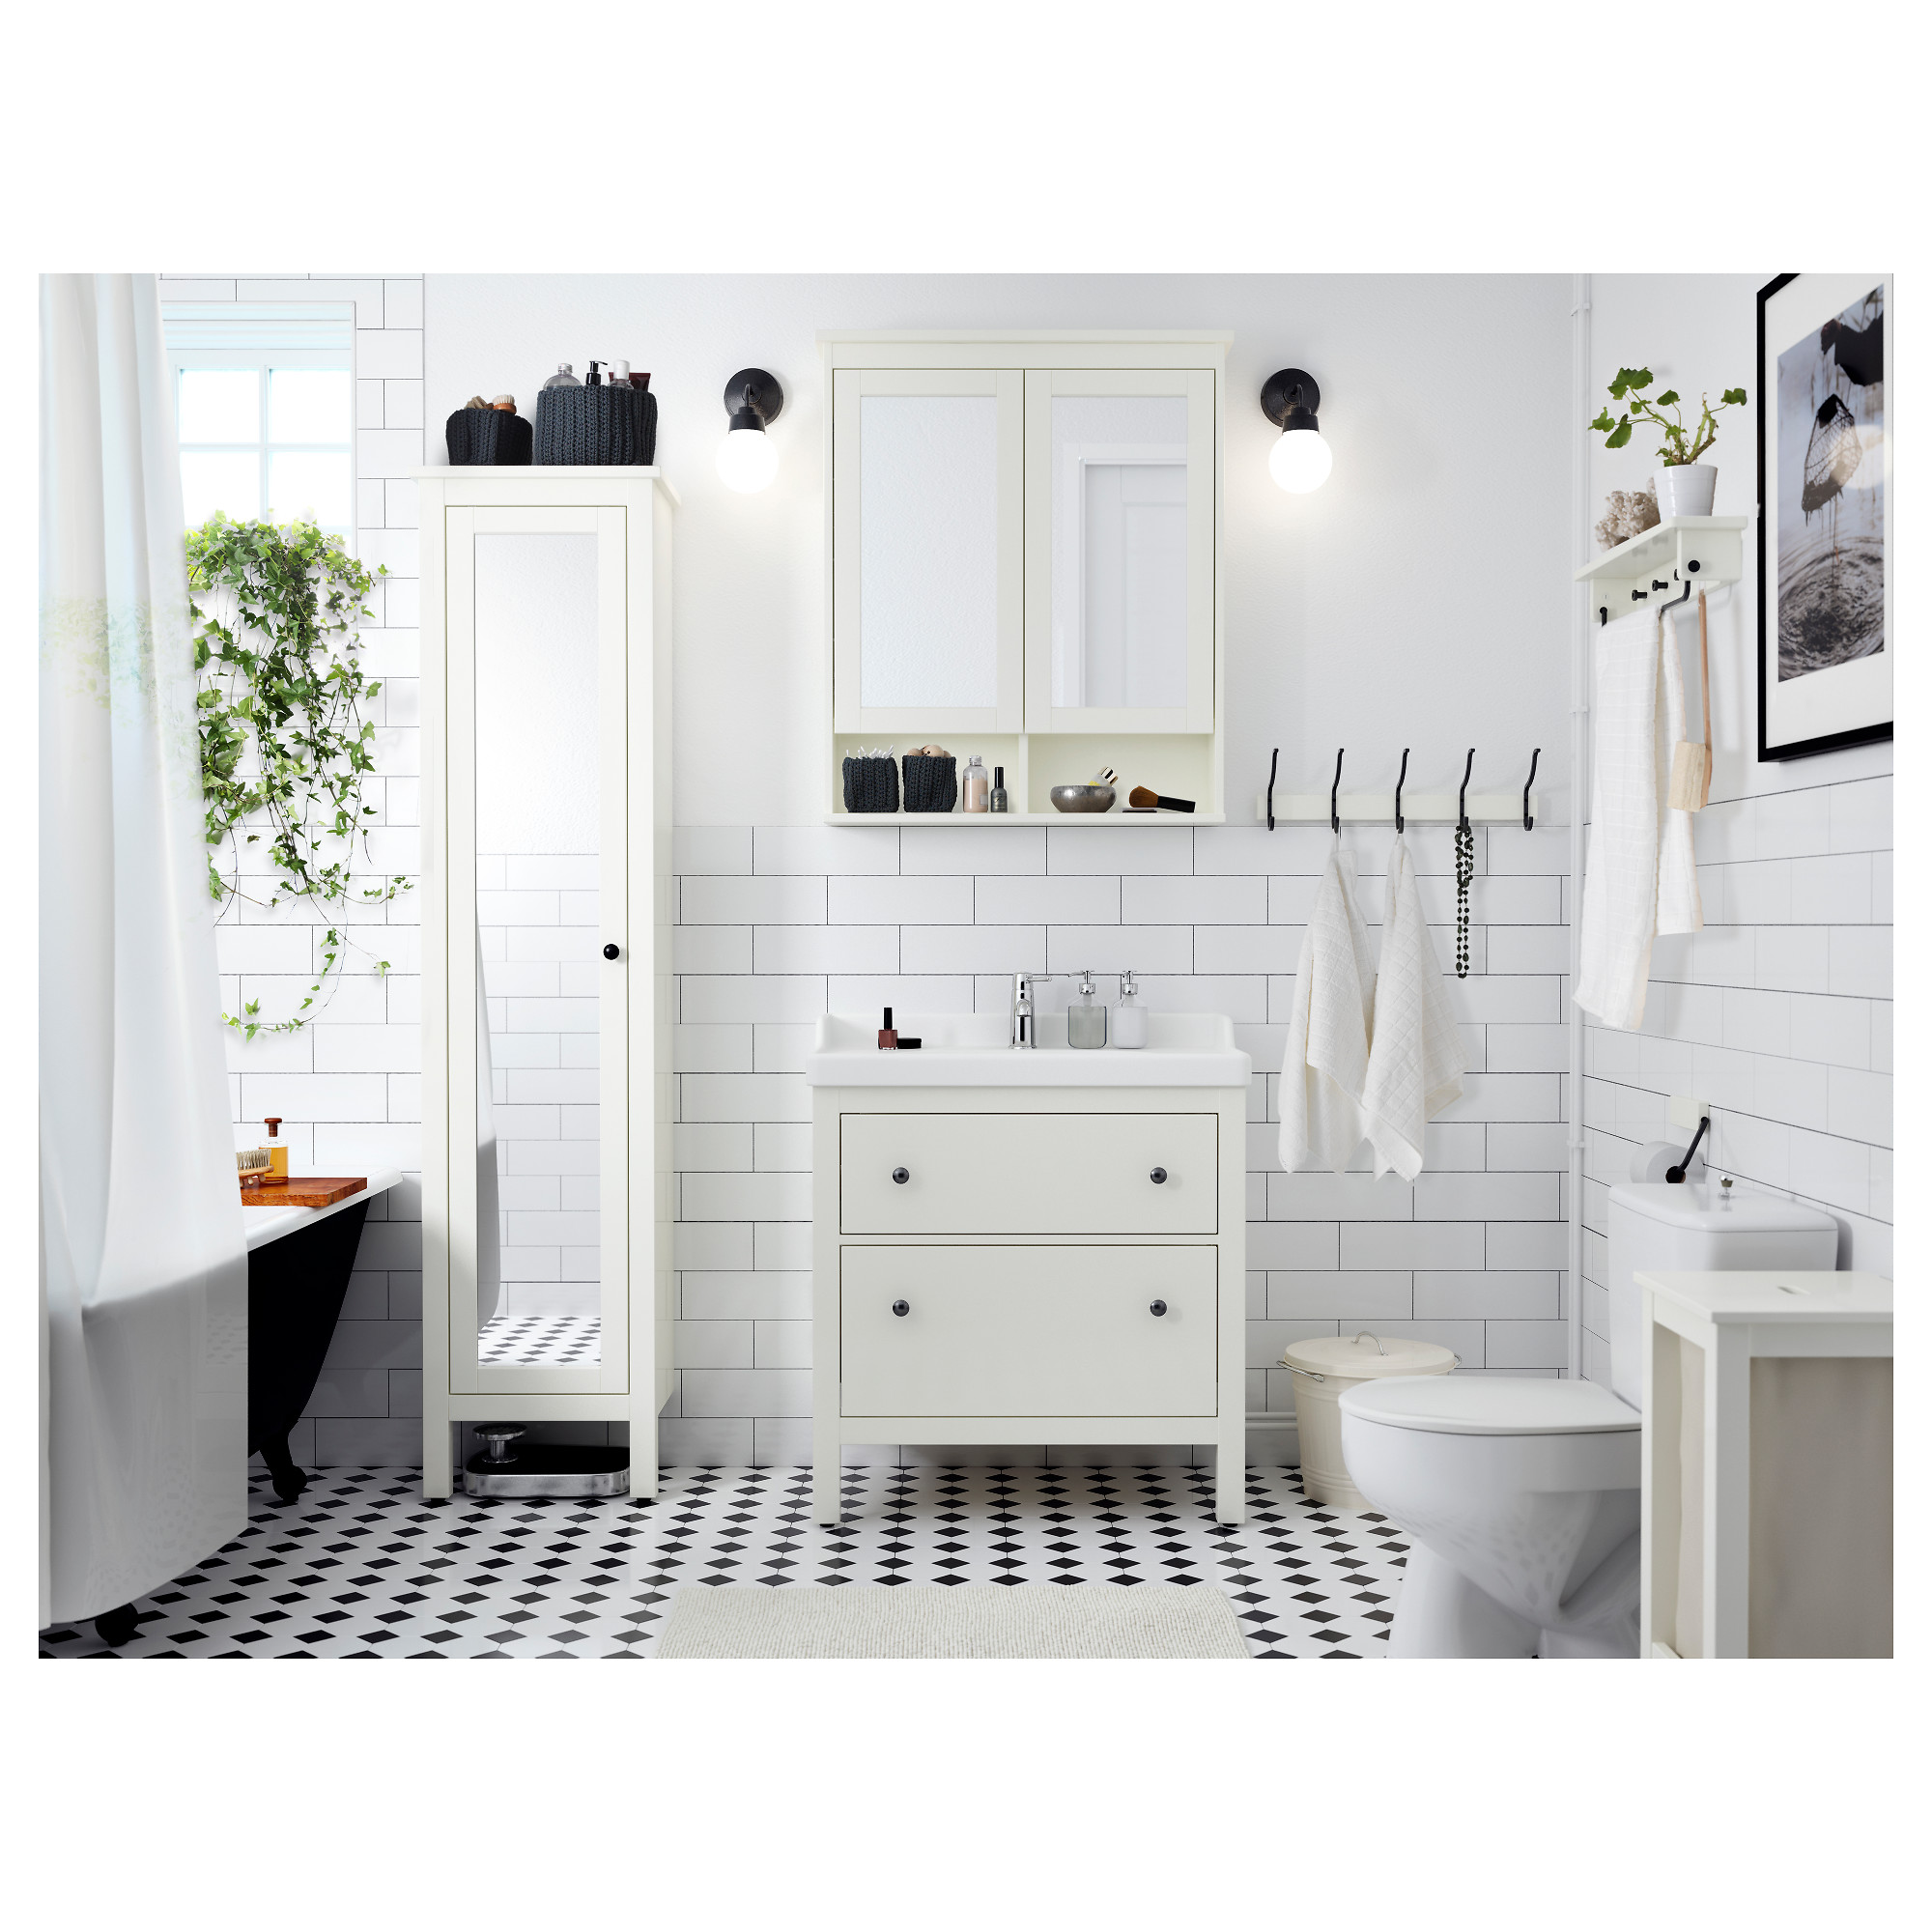 hemnes rttviken sink cabinet with 2 drawers white ikea - Ikea Bathroom Design